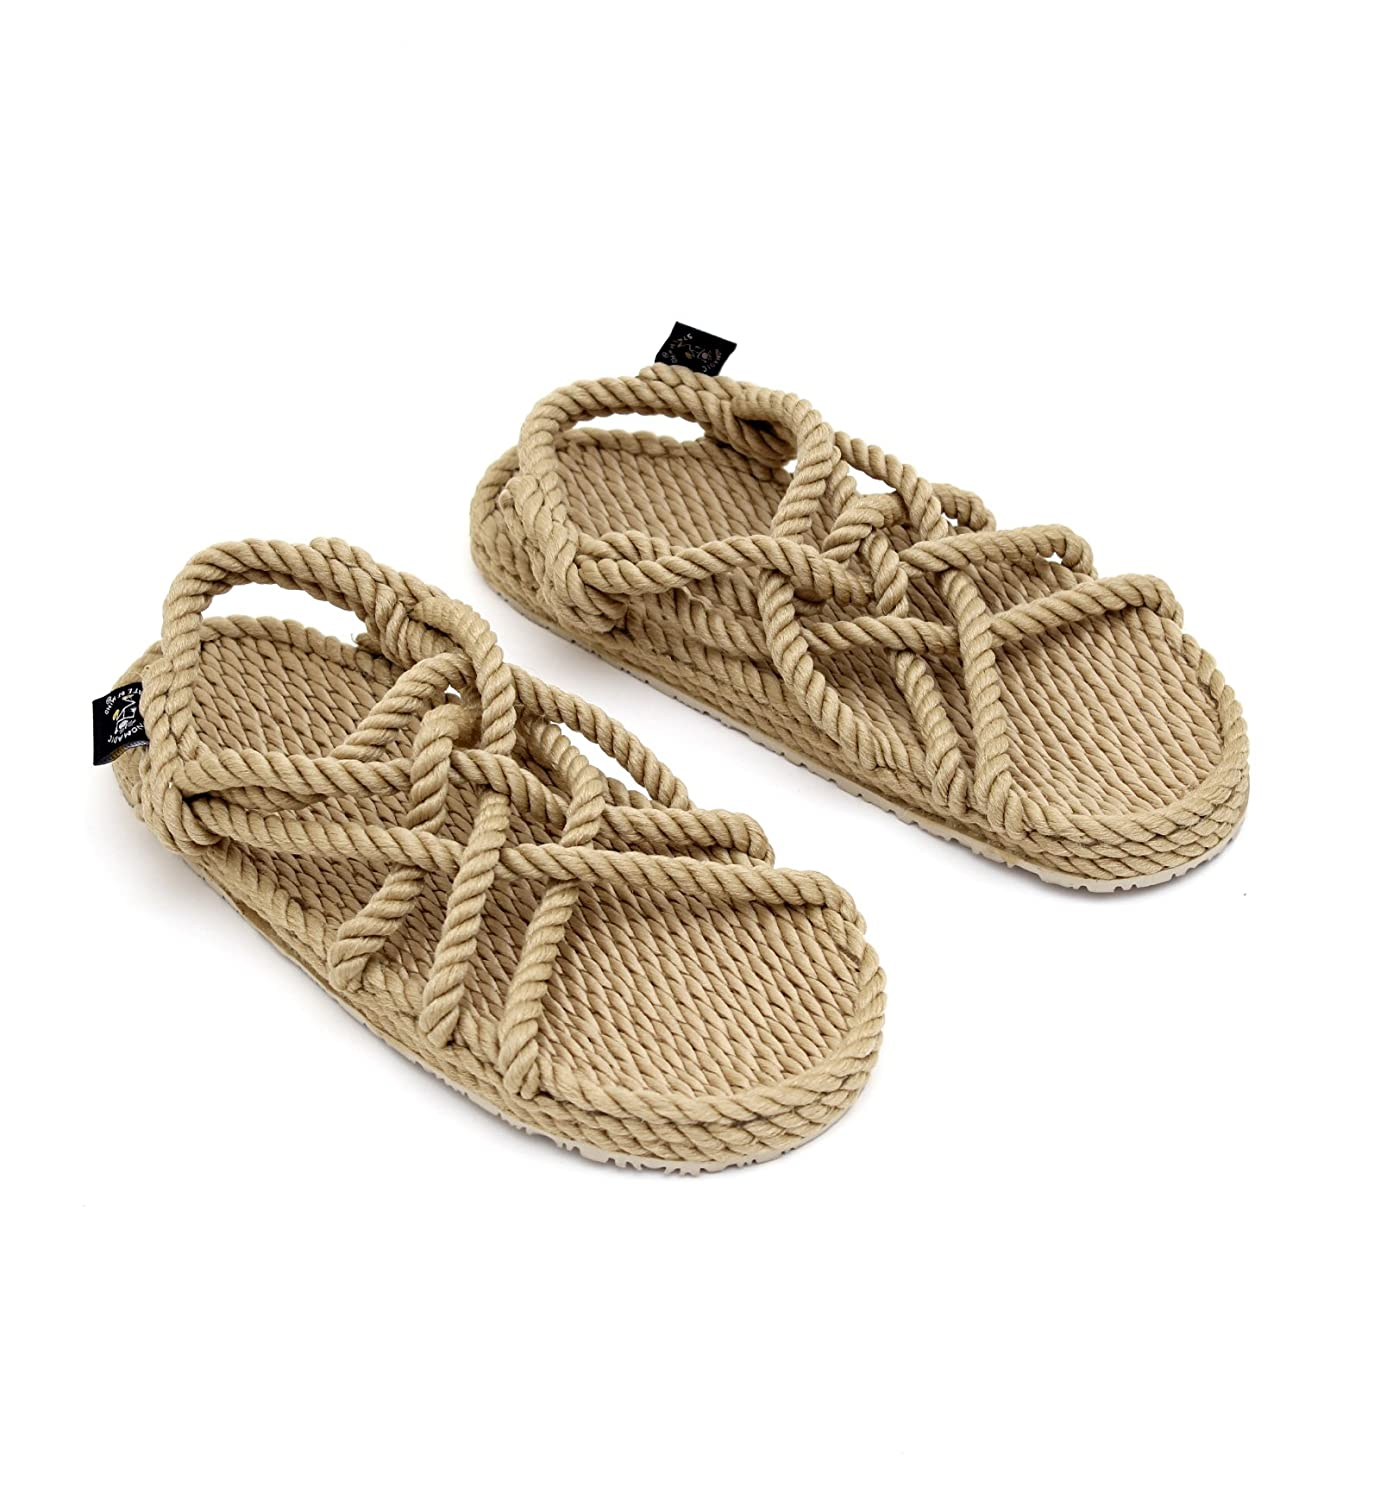 67a042df934820 Nomadics with sole unisex adults rope sandals shoes bags jpg 1380x1500 His rope  sandals